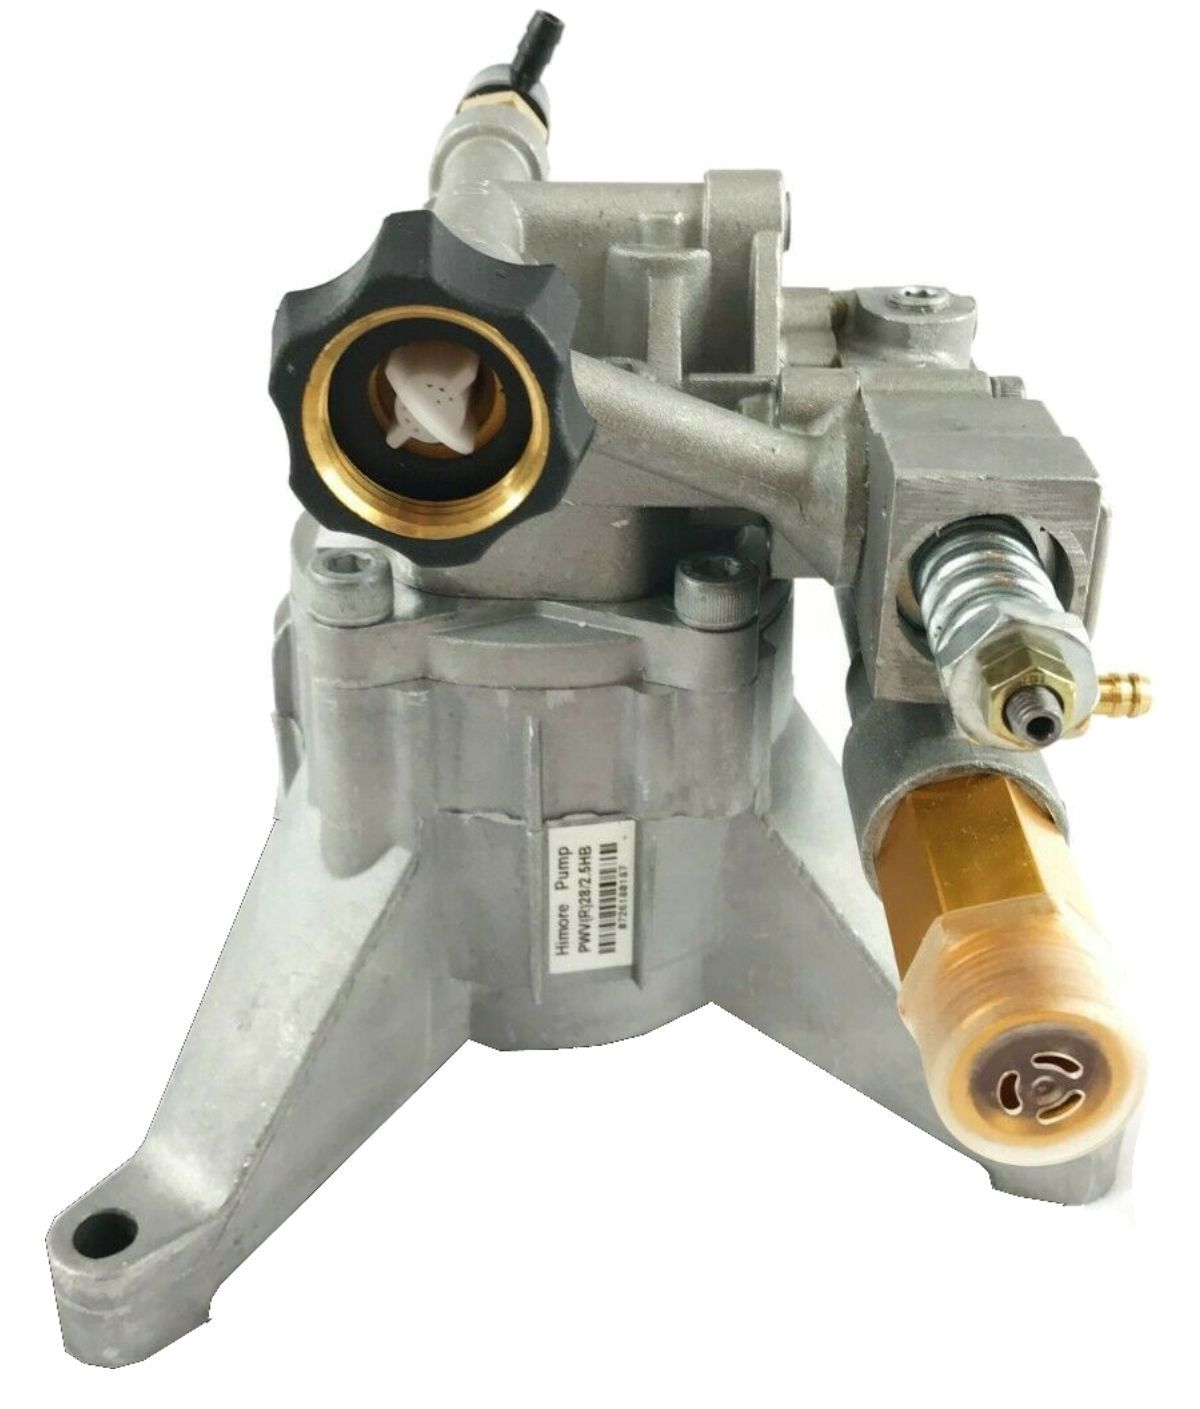 2700 PSI POWER PRESSURE WASHER WATER PUMP Karcher Generac Campbell Hausfeld - AE-Power